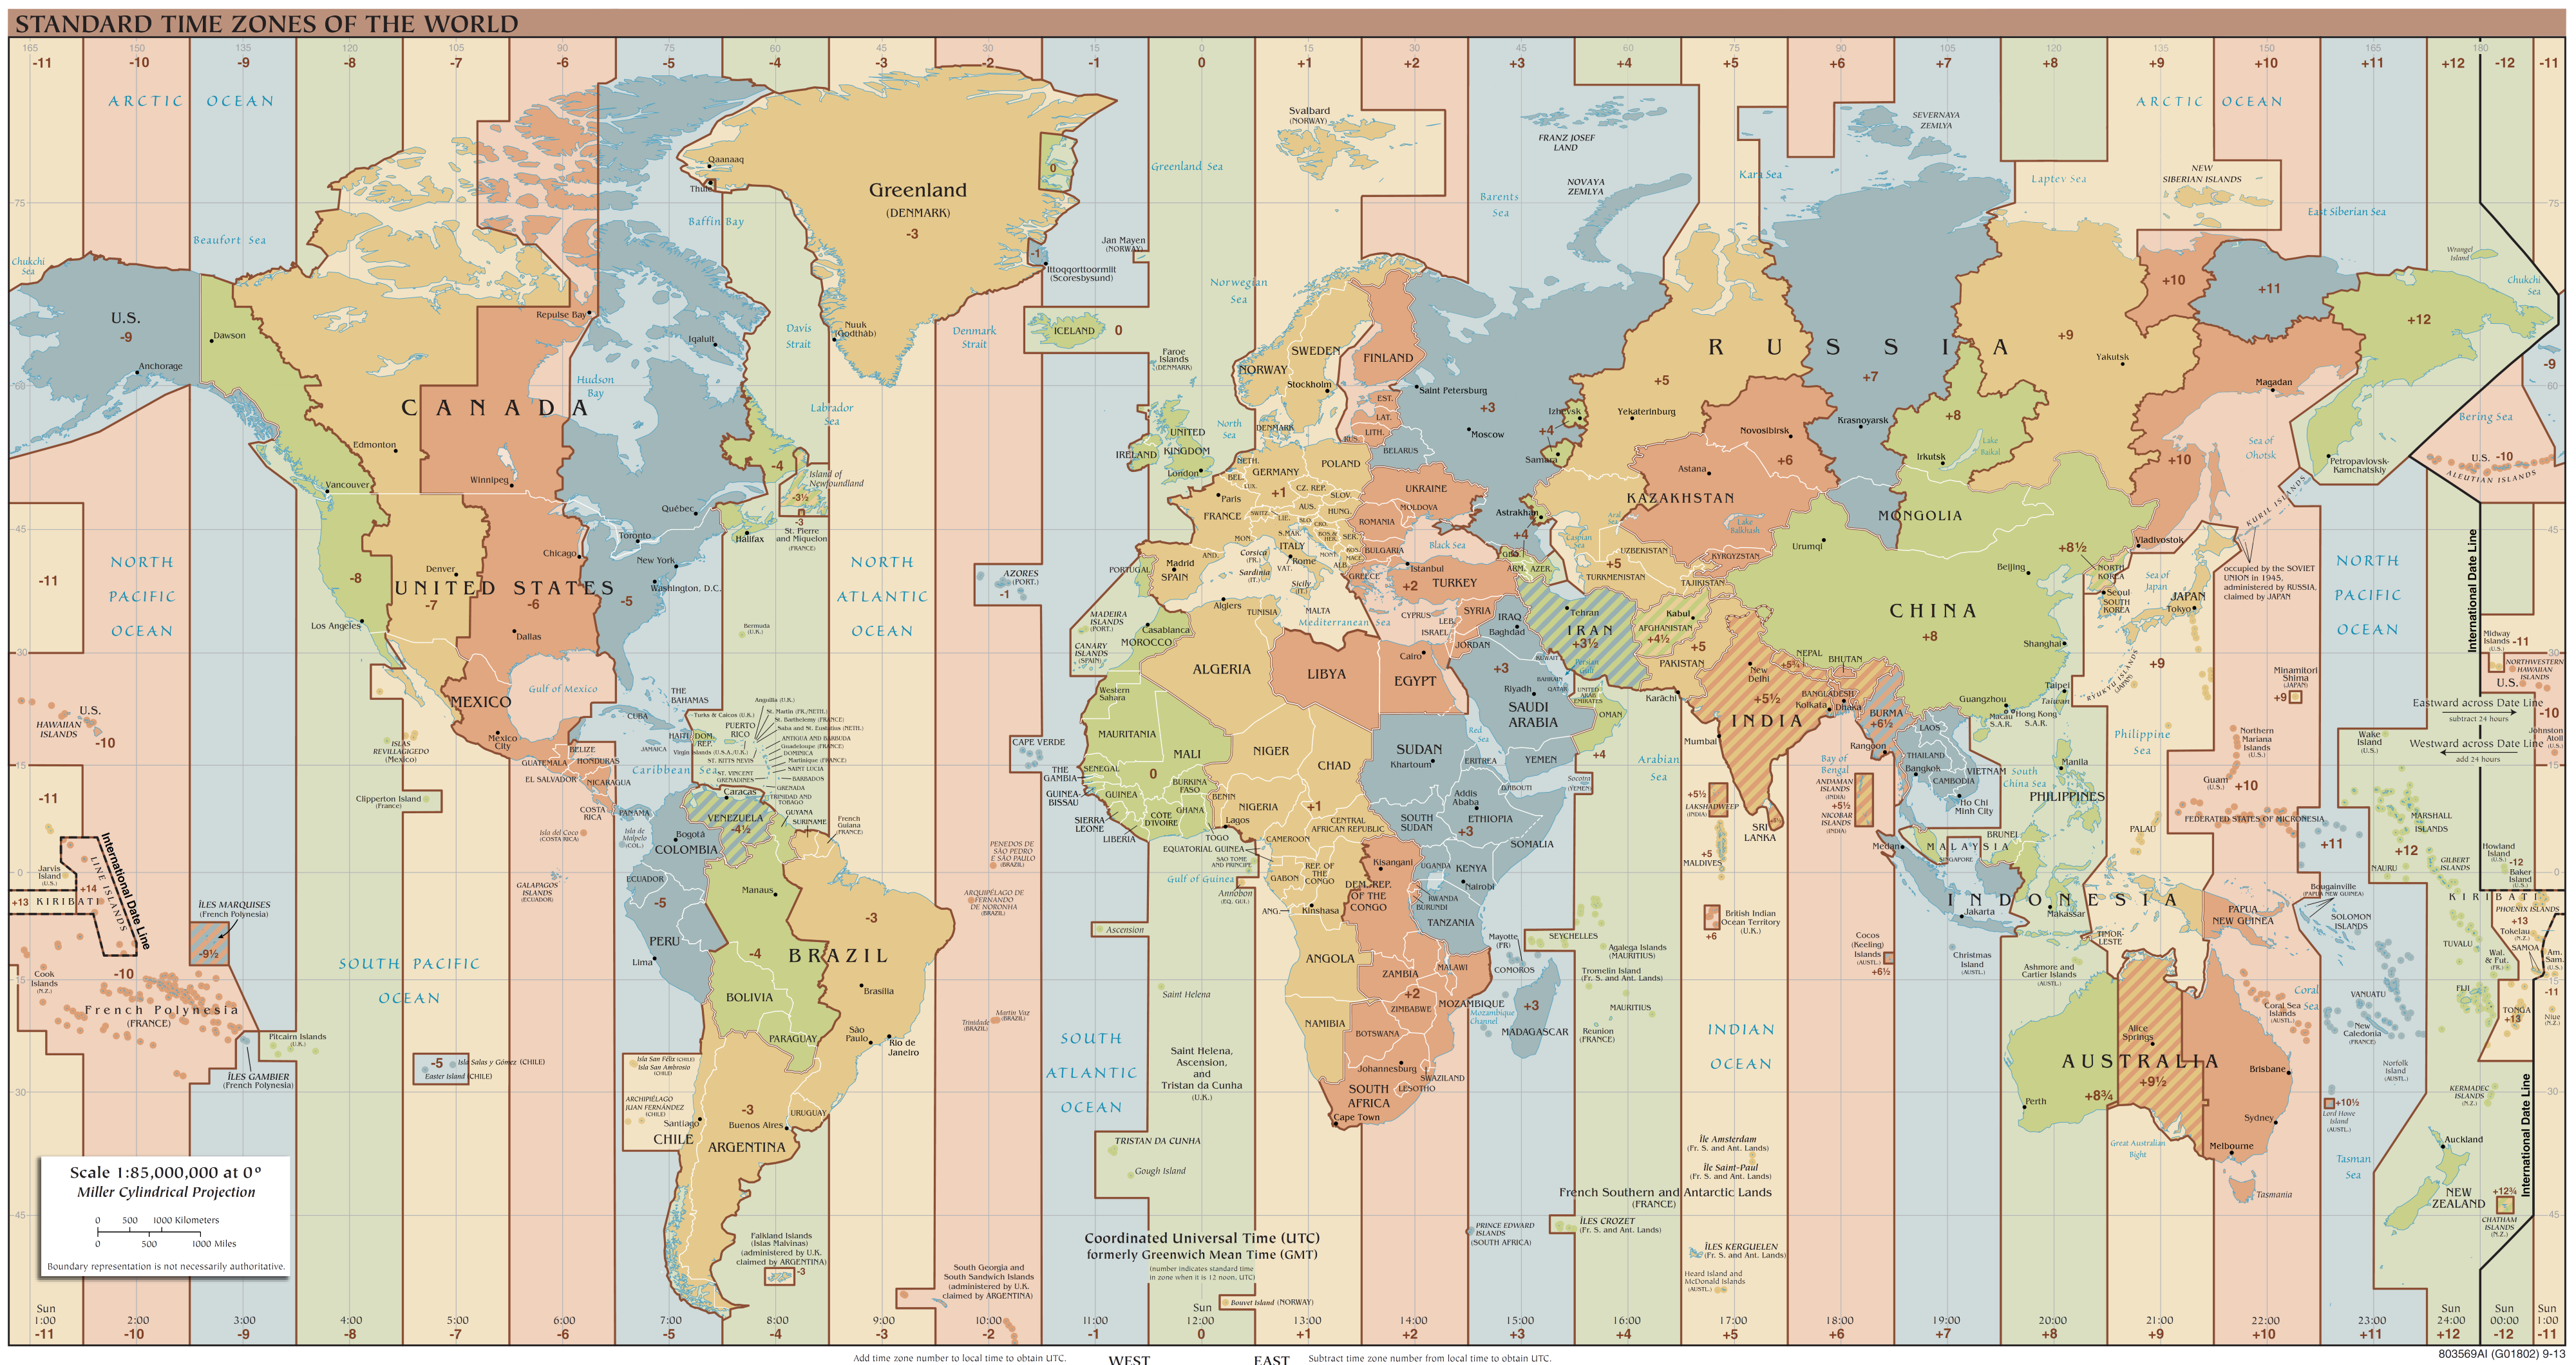 World time zones. Image credit: TimeZonesBoy, via Wikipedia Commons.